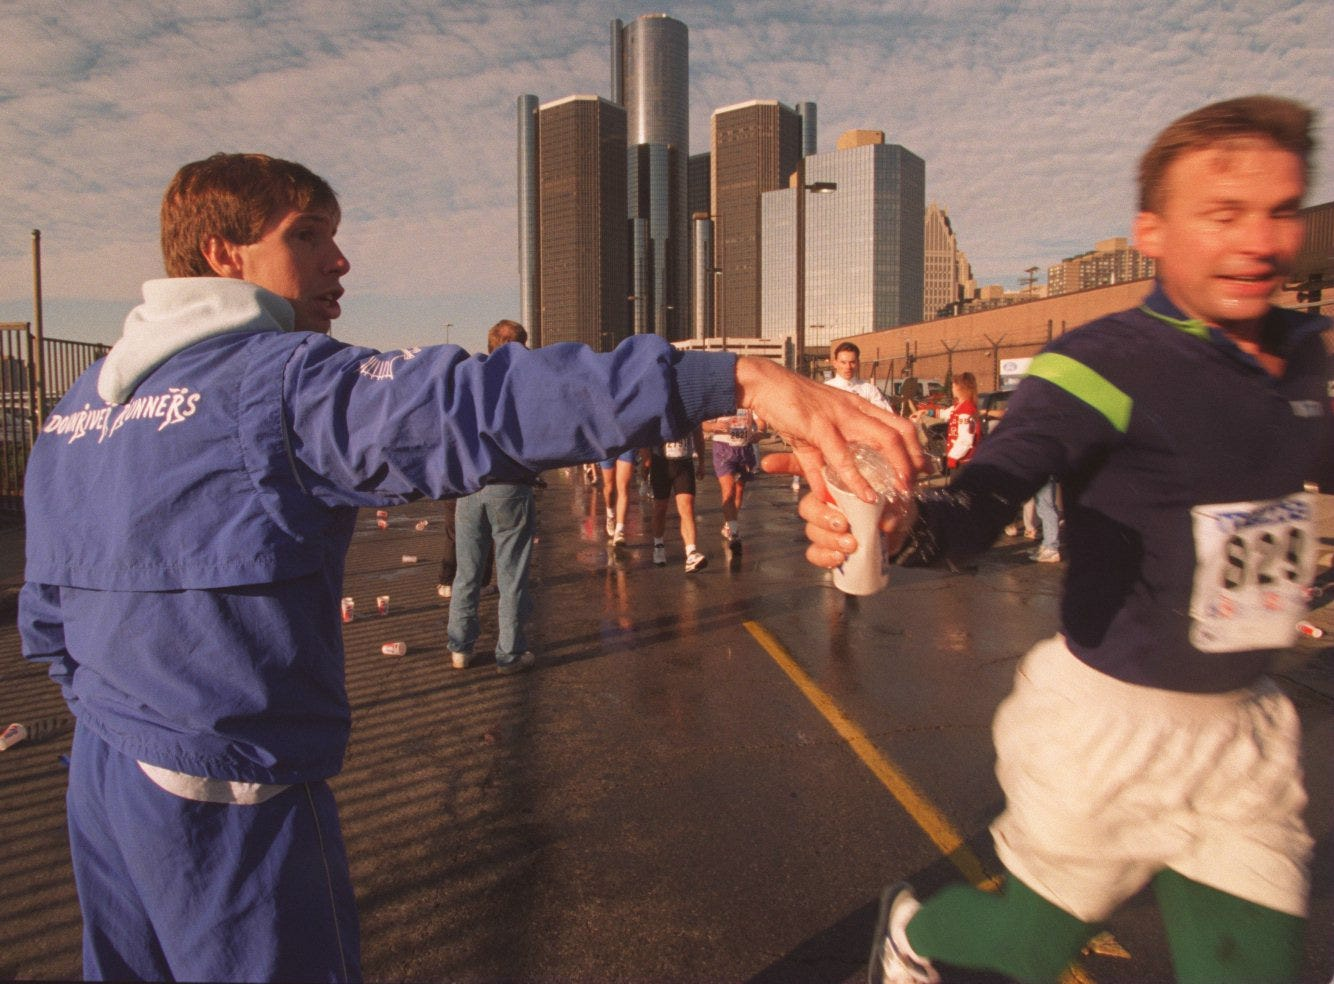 Ken Pastor, left of Allen Park, MI,  hands out water to runners at the Ten Mile mark of the Free Press Marathon with the Ren Cen in the background.